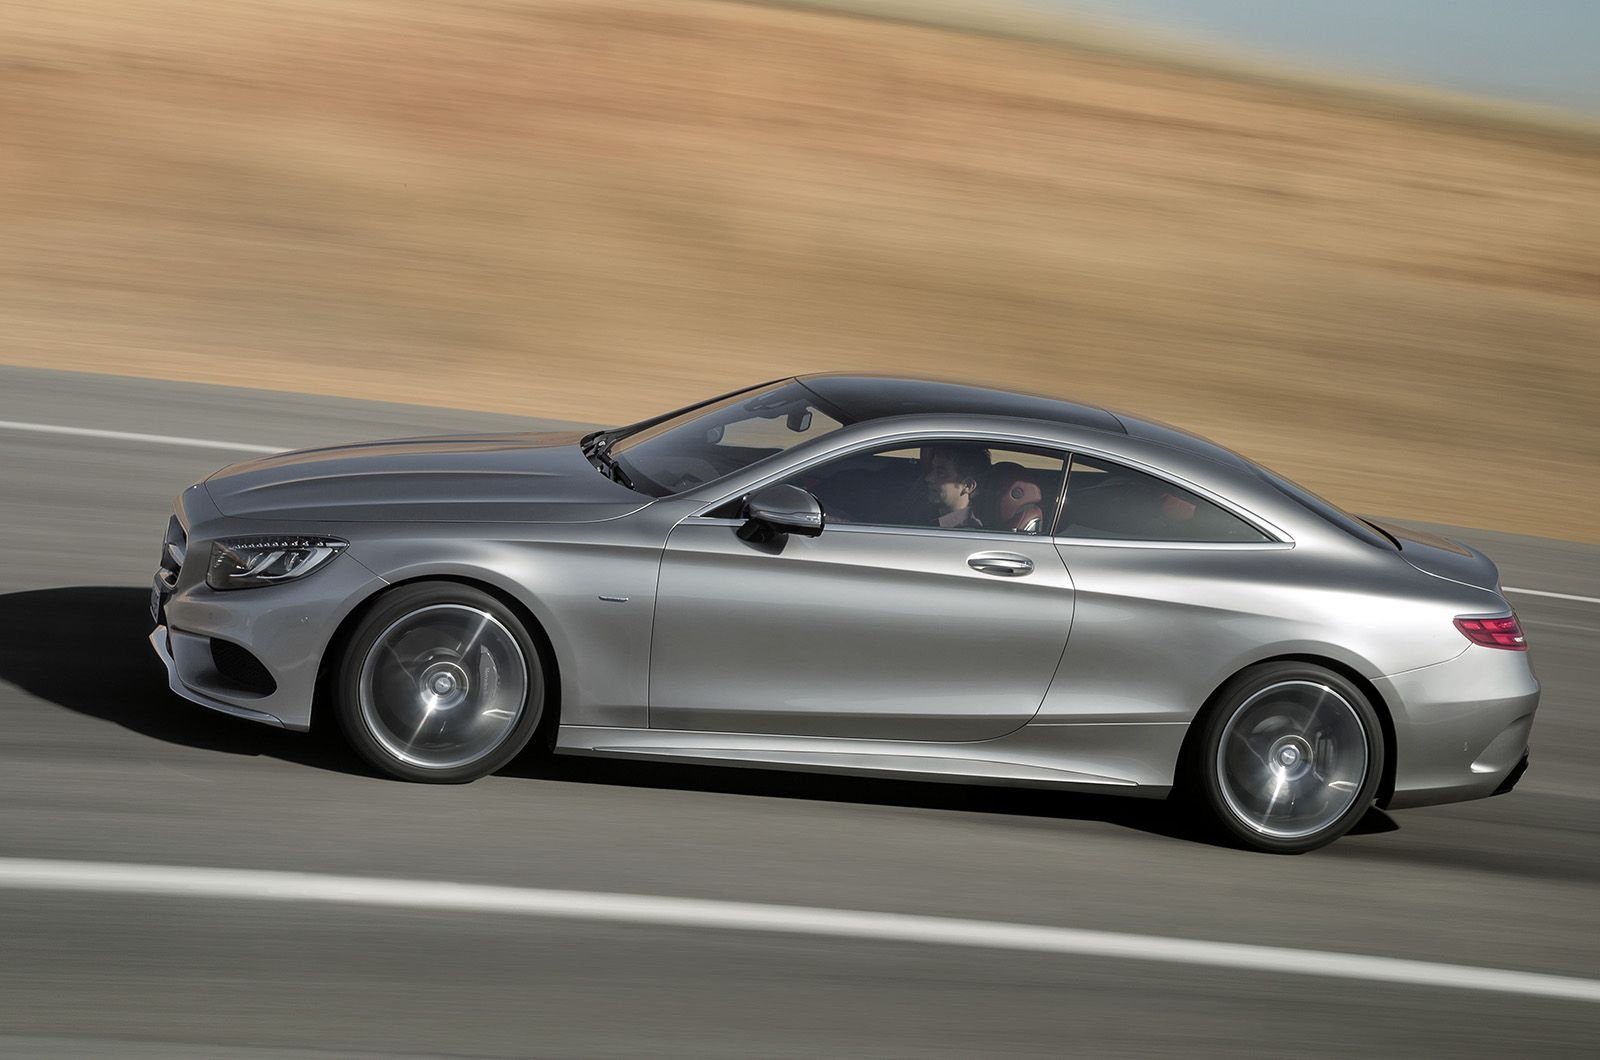 Mercedes benz s500 coupe 4matic first drive review